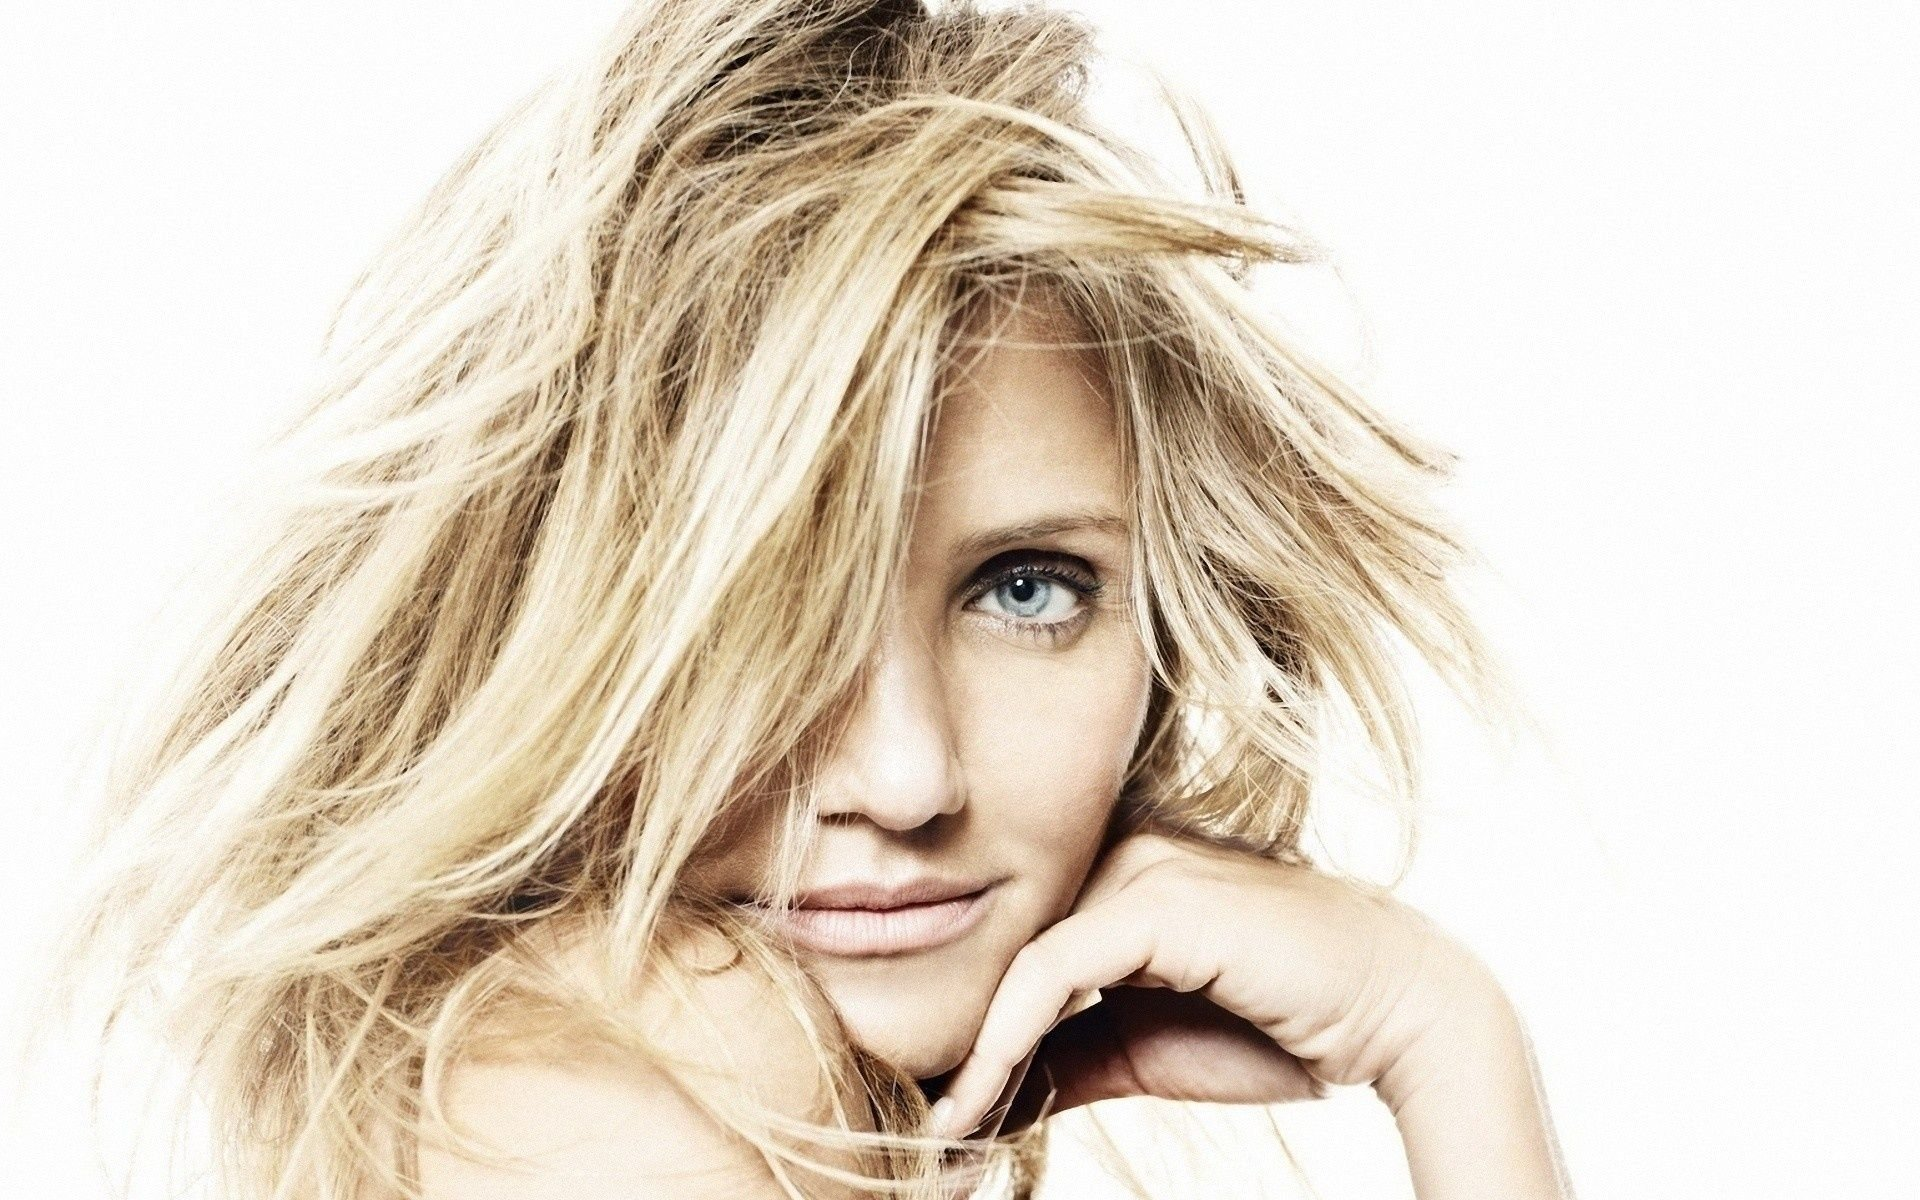 17 Beautiful HD Cameron Diaz Wallpapers   HDWallSourcecom 1920x1200